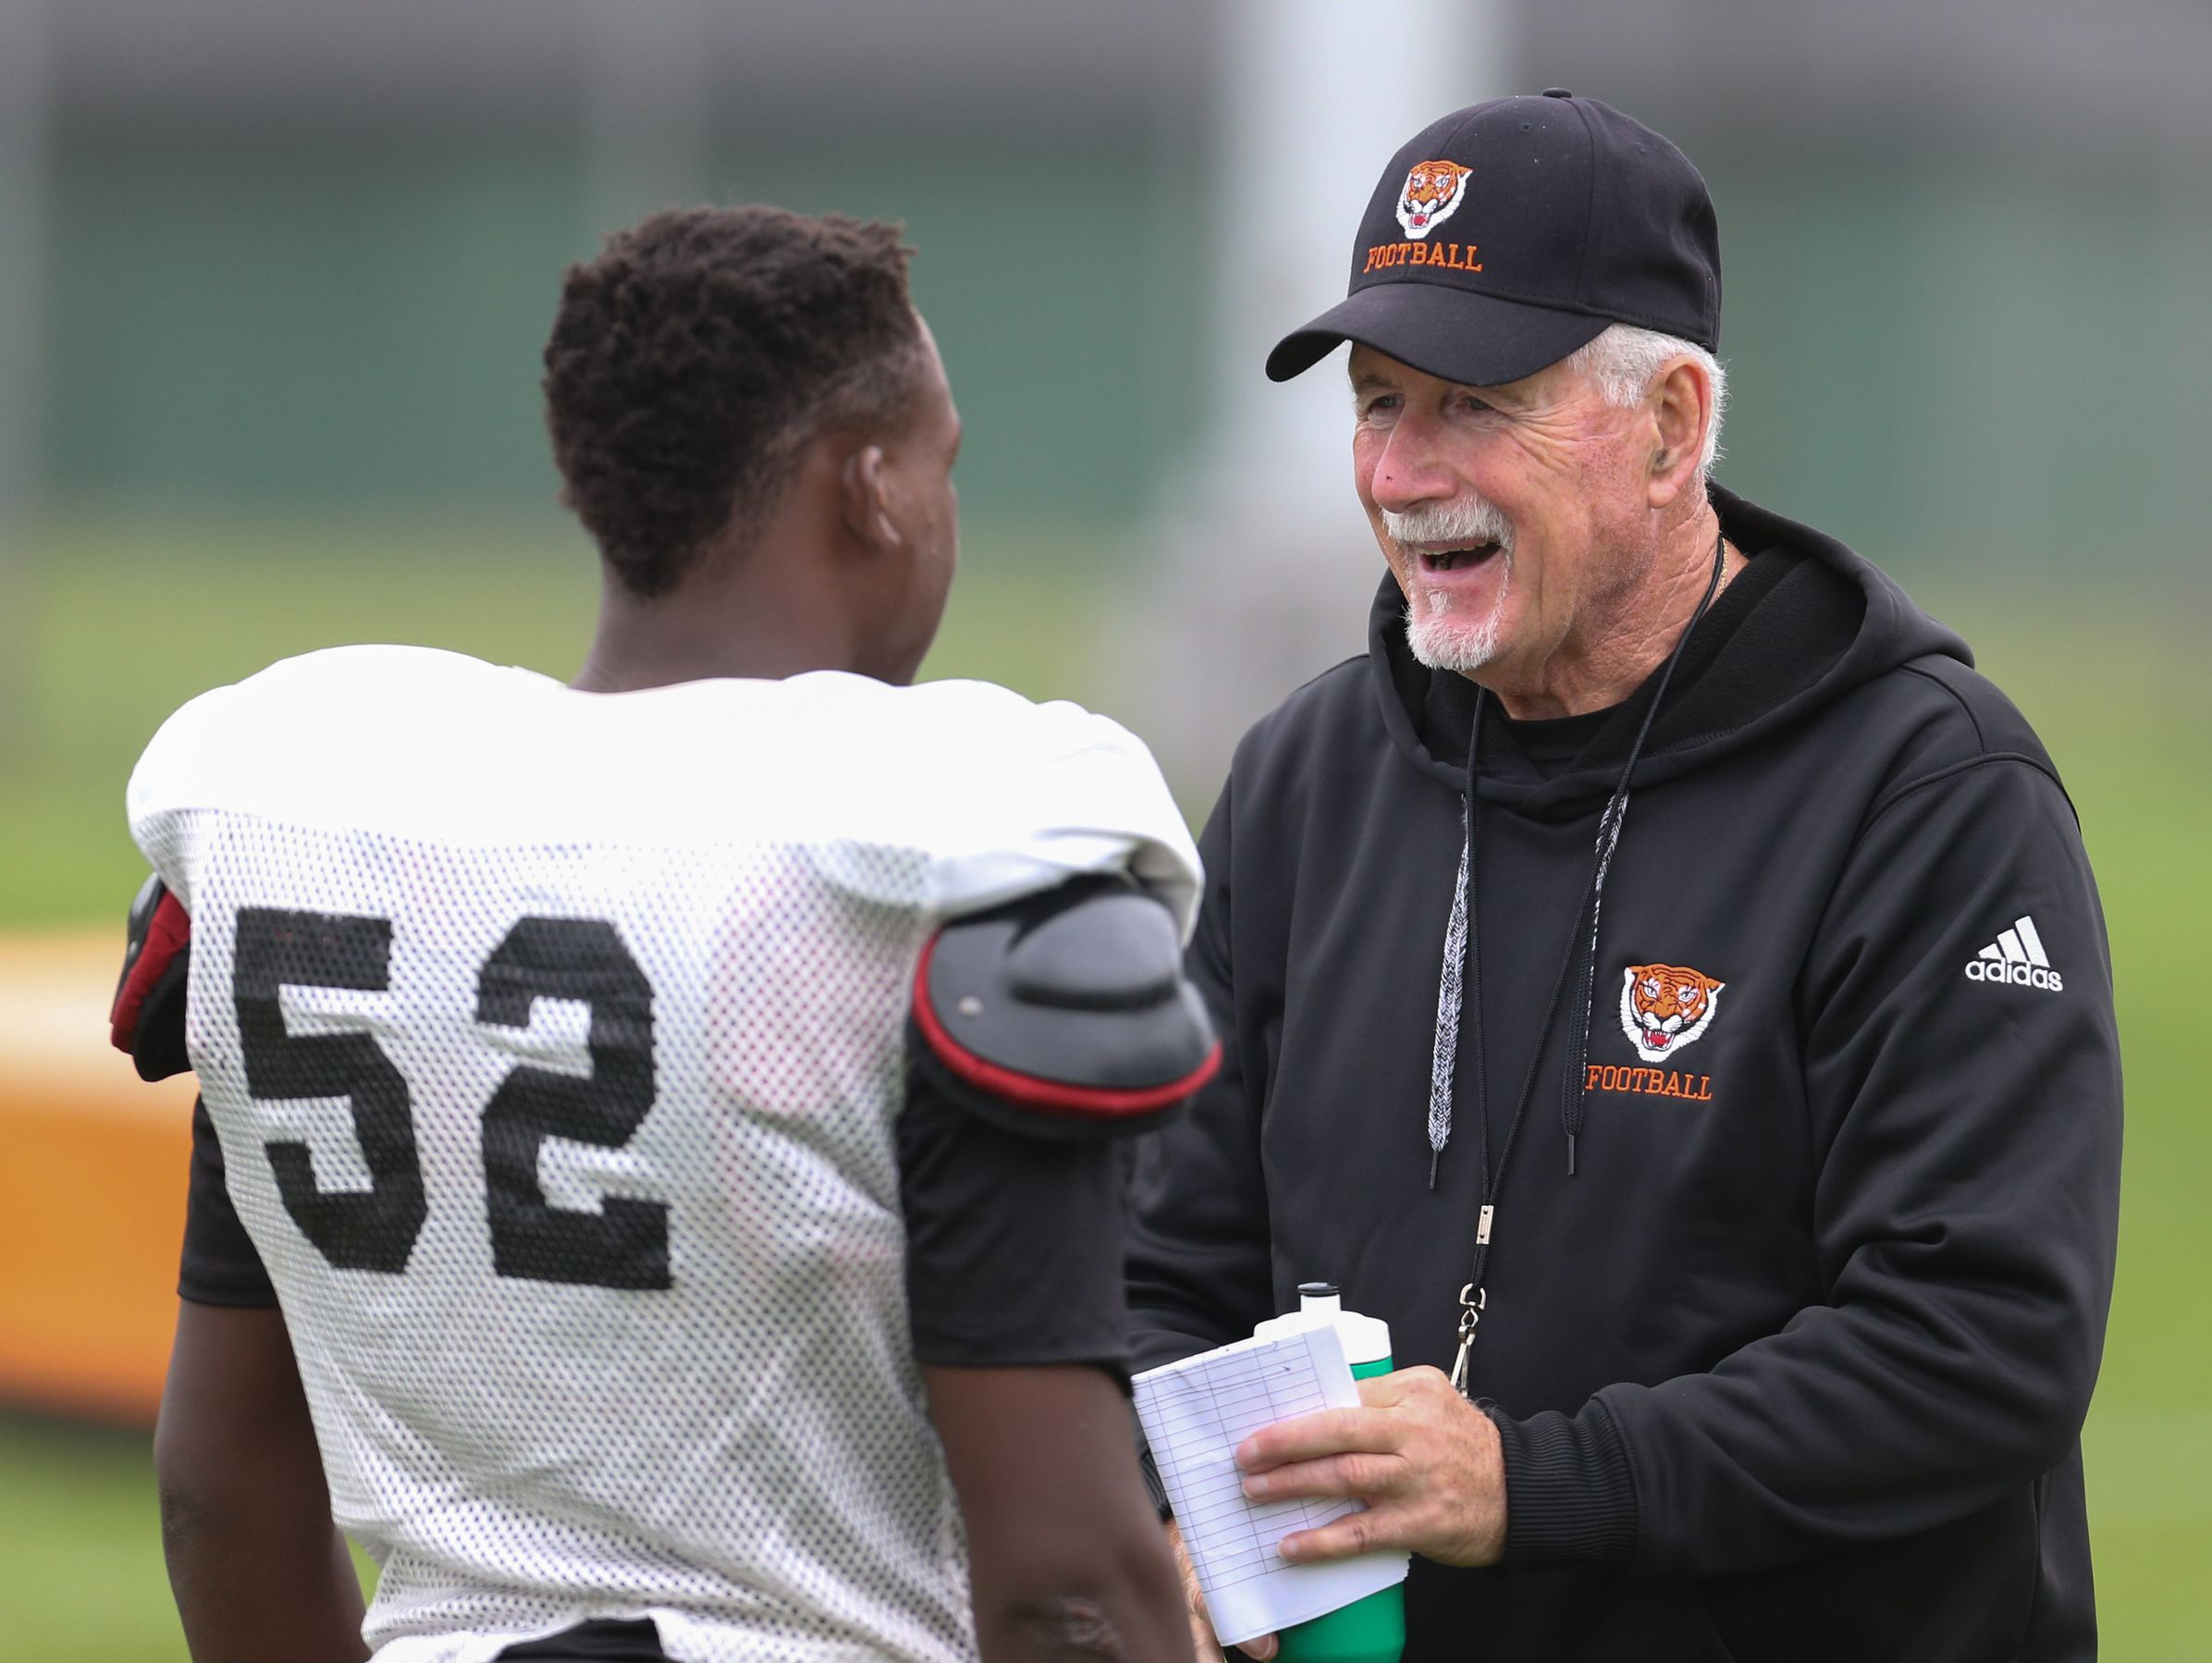 Benton Harbor head football coach Elliot Uzelac talks with Mikel Seals-Porter during practice.